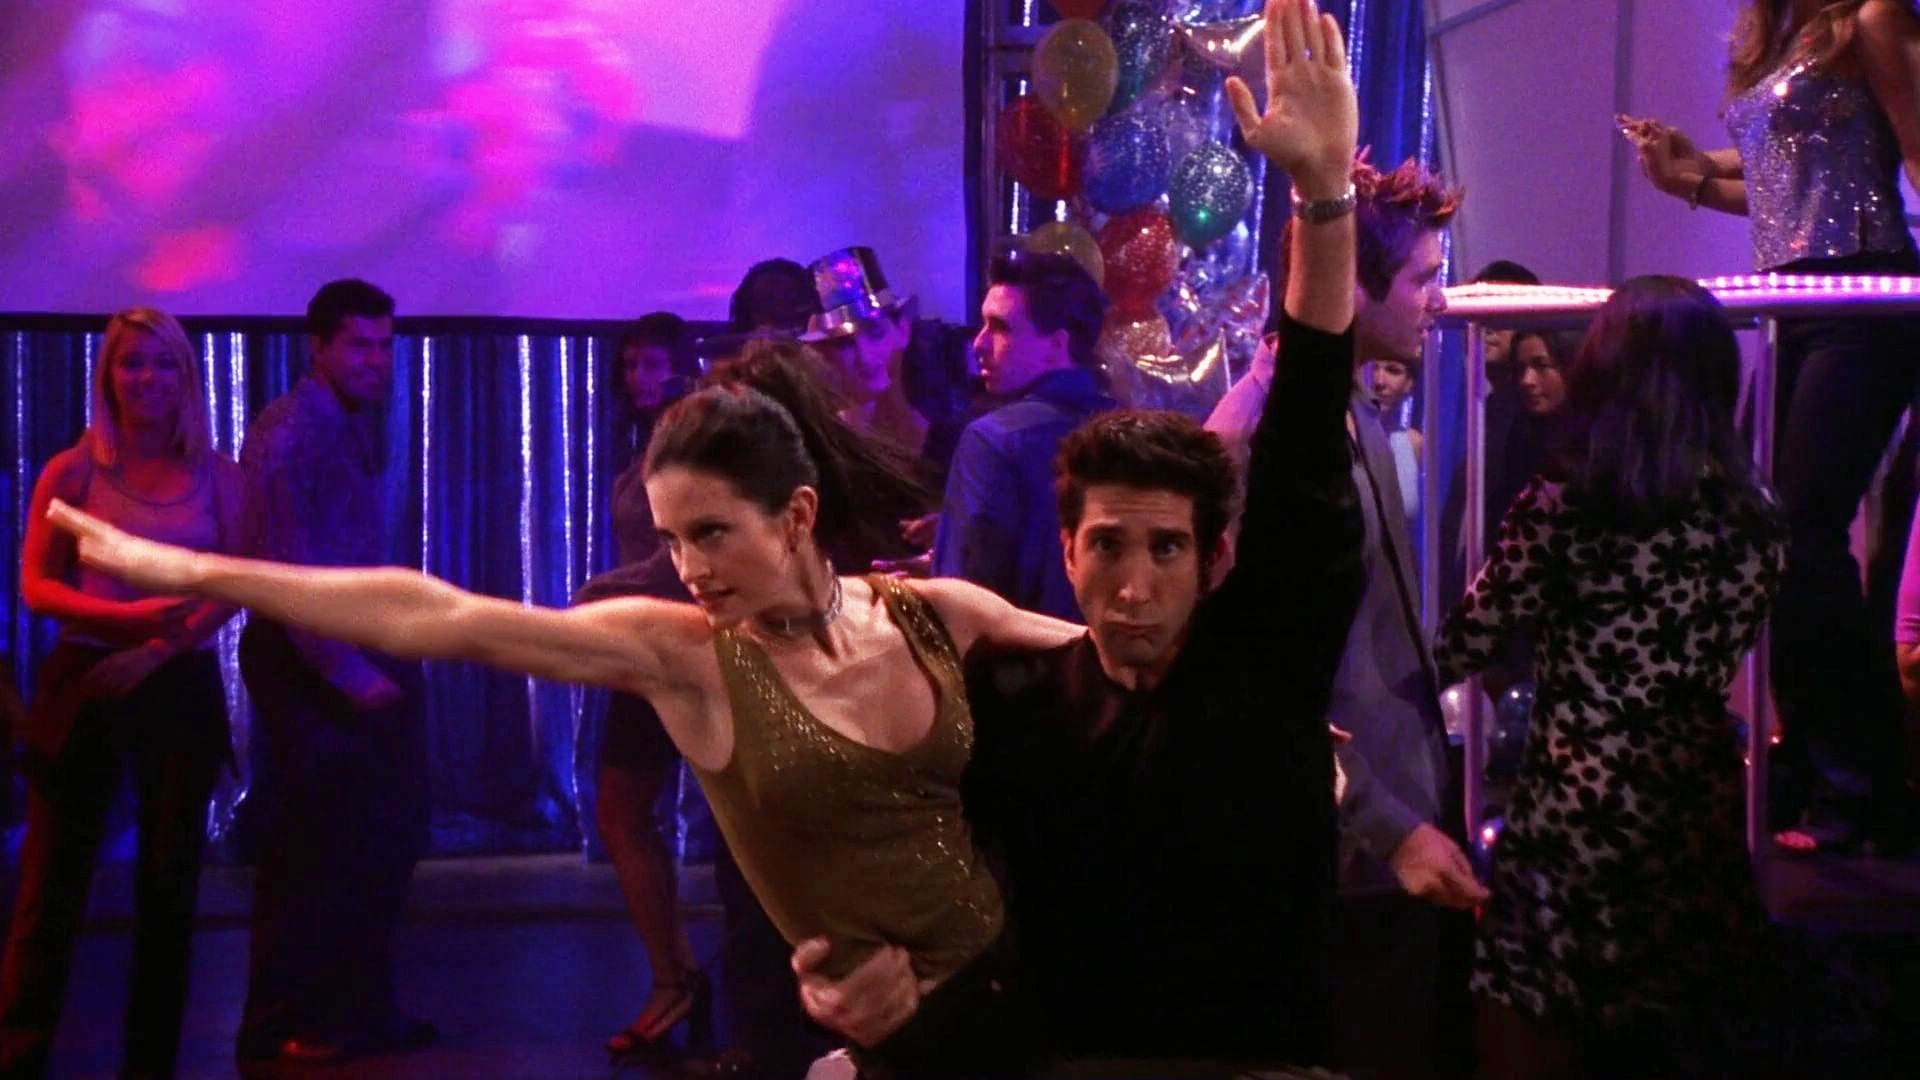 The One With The Routine (a.k.a. The One With The Rockin' New Year)